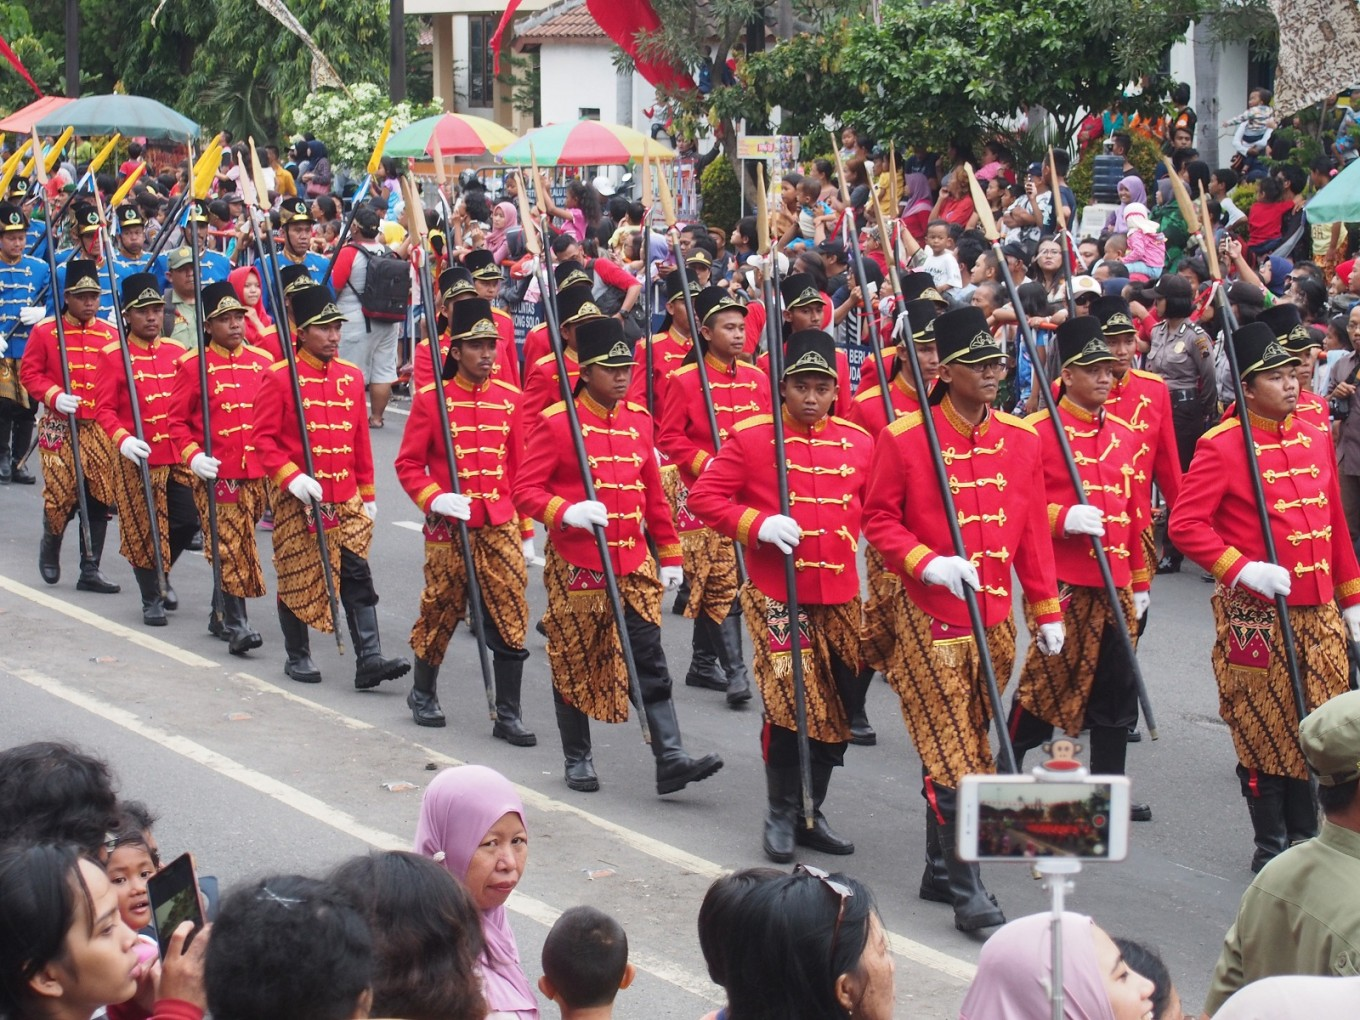 Soldiers from the Surakarta Tourism Awareness Group (Pokdarwis) join in the Boyong Kedhaton carnival.